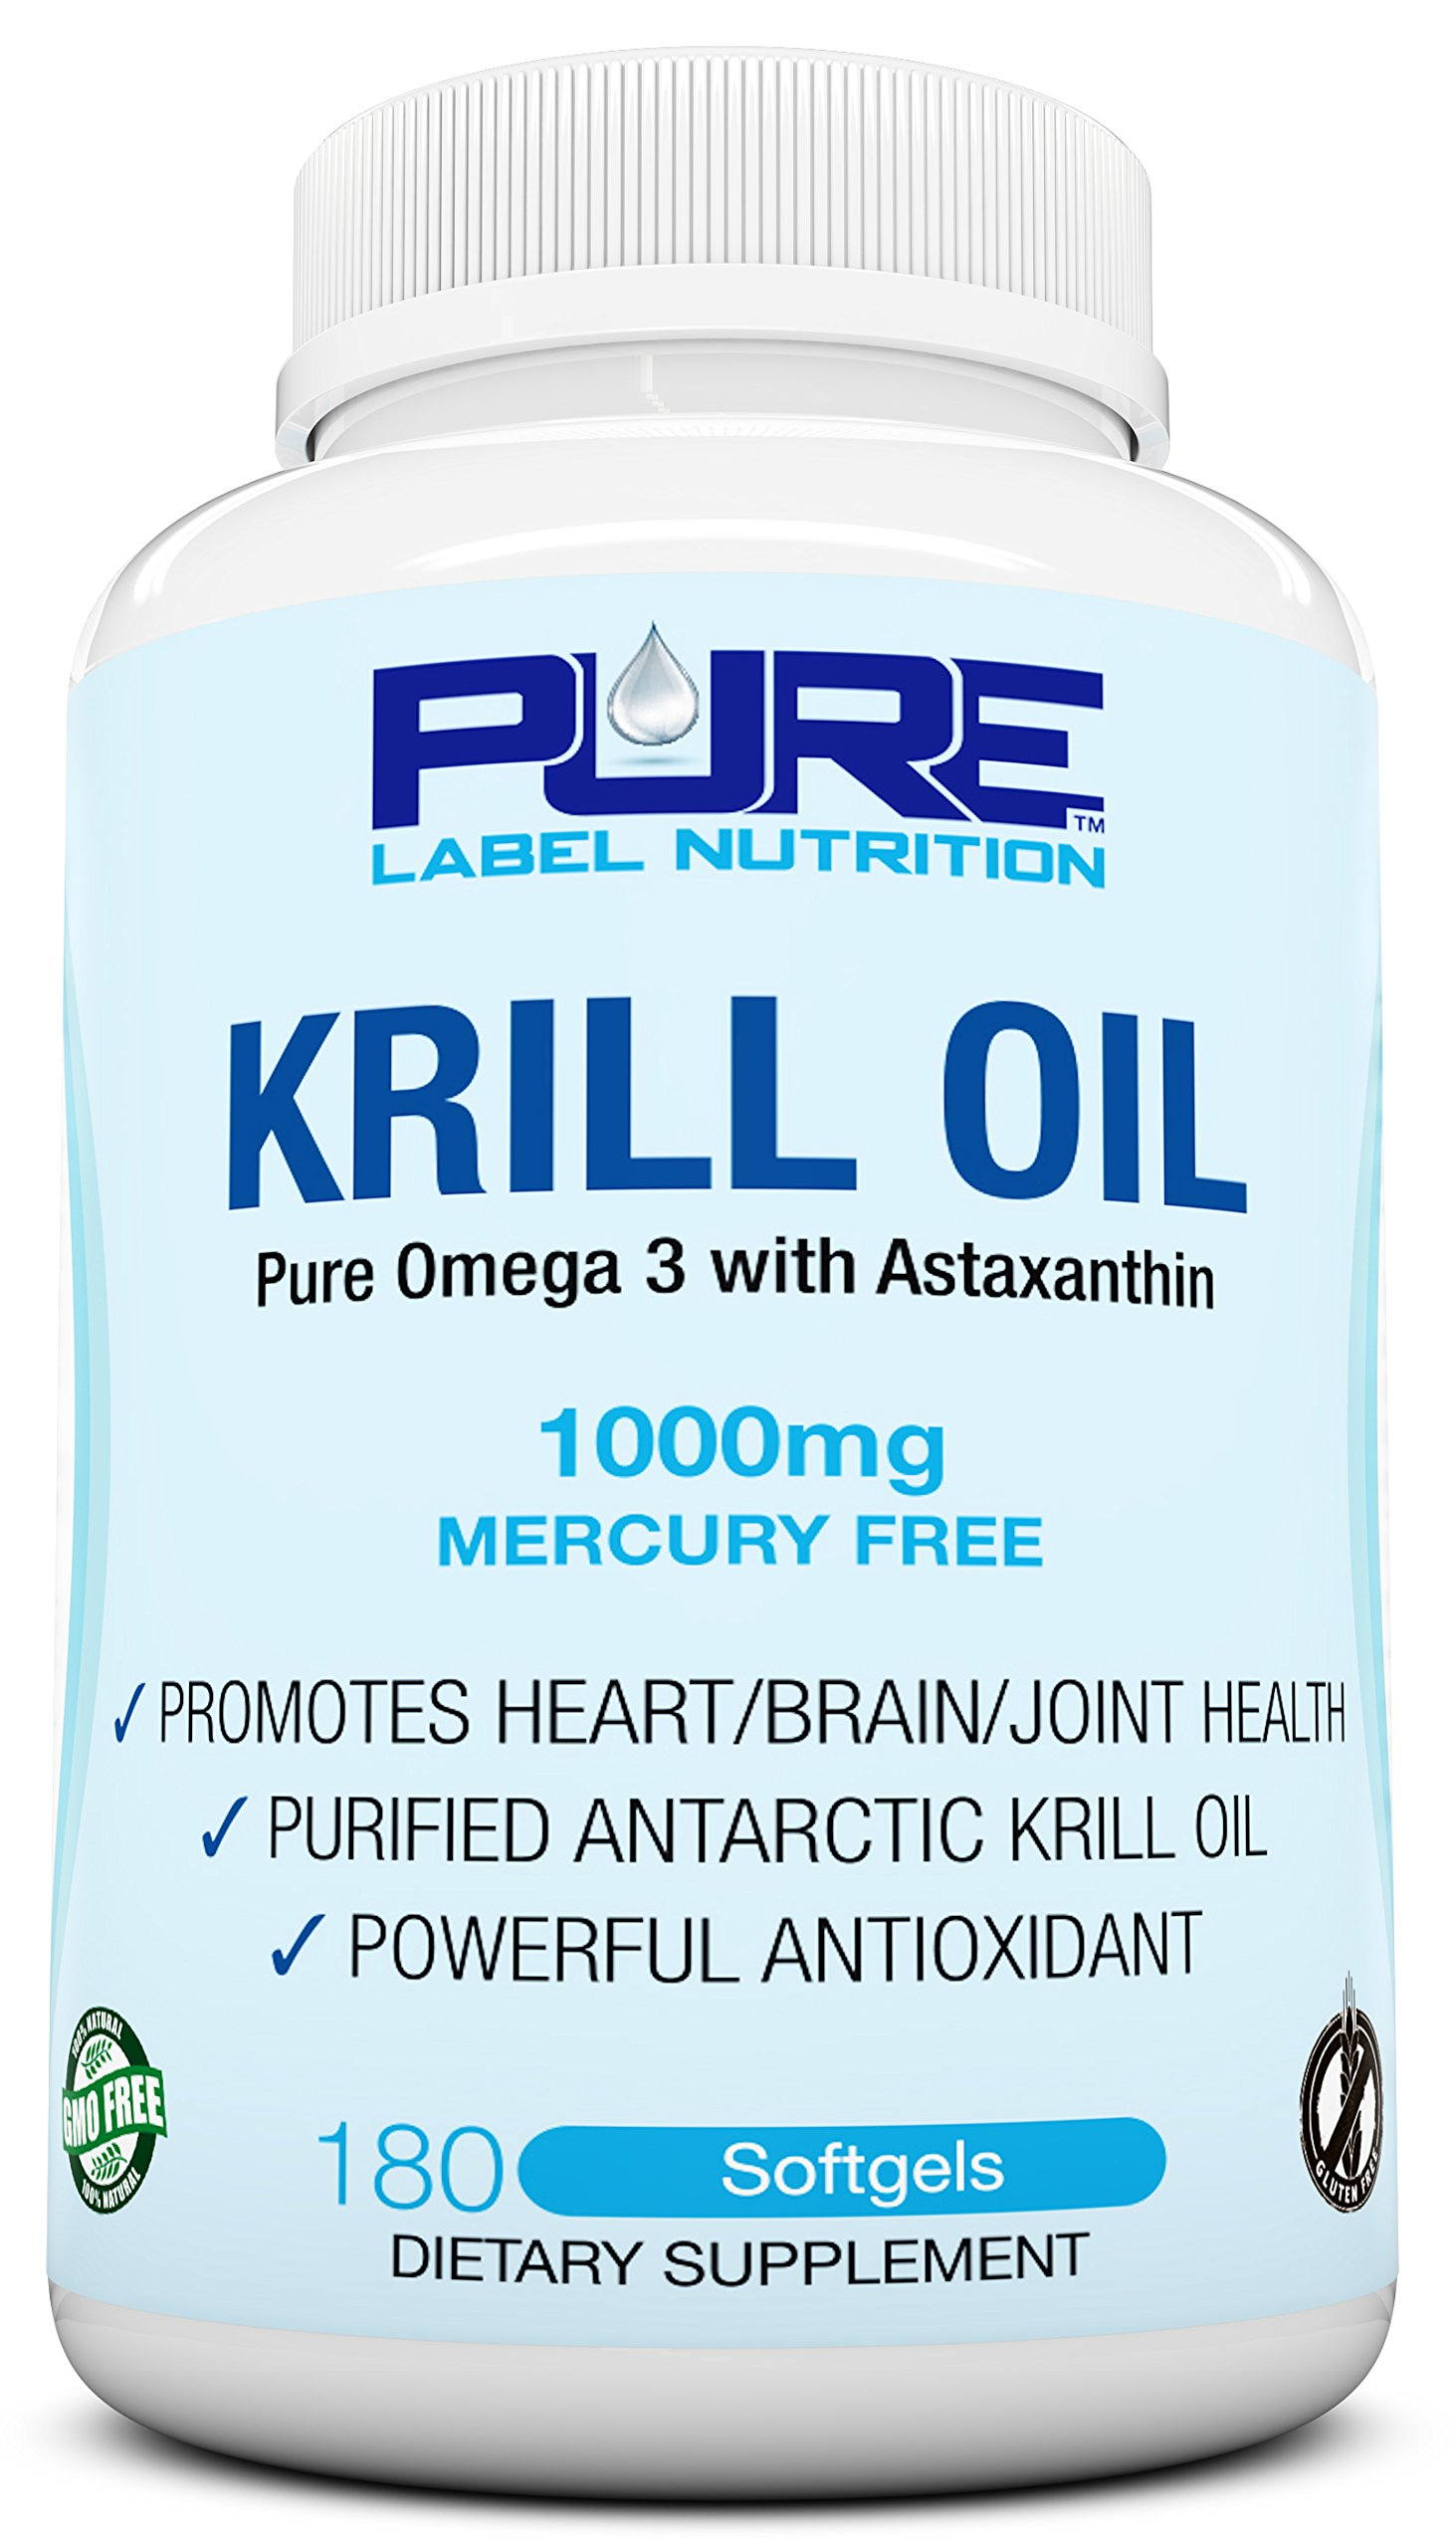 Krill Oil 1000mg with Astaxanthin 180 Caps Omega 3 6 9 - EPA DHA - 100% Purified, Mercury free and Wild Caught - Non GMO - Gluten FREE - Pure Krill Oil - Mega Dose Phospholipids